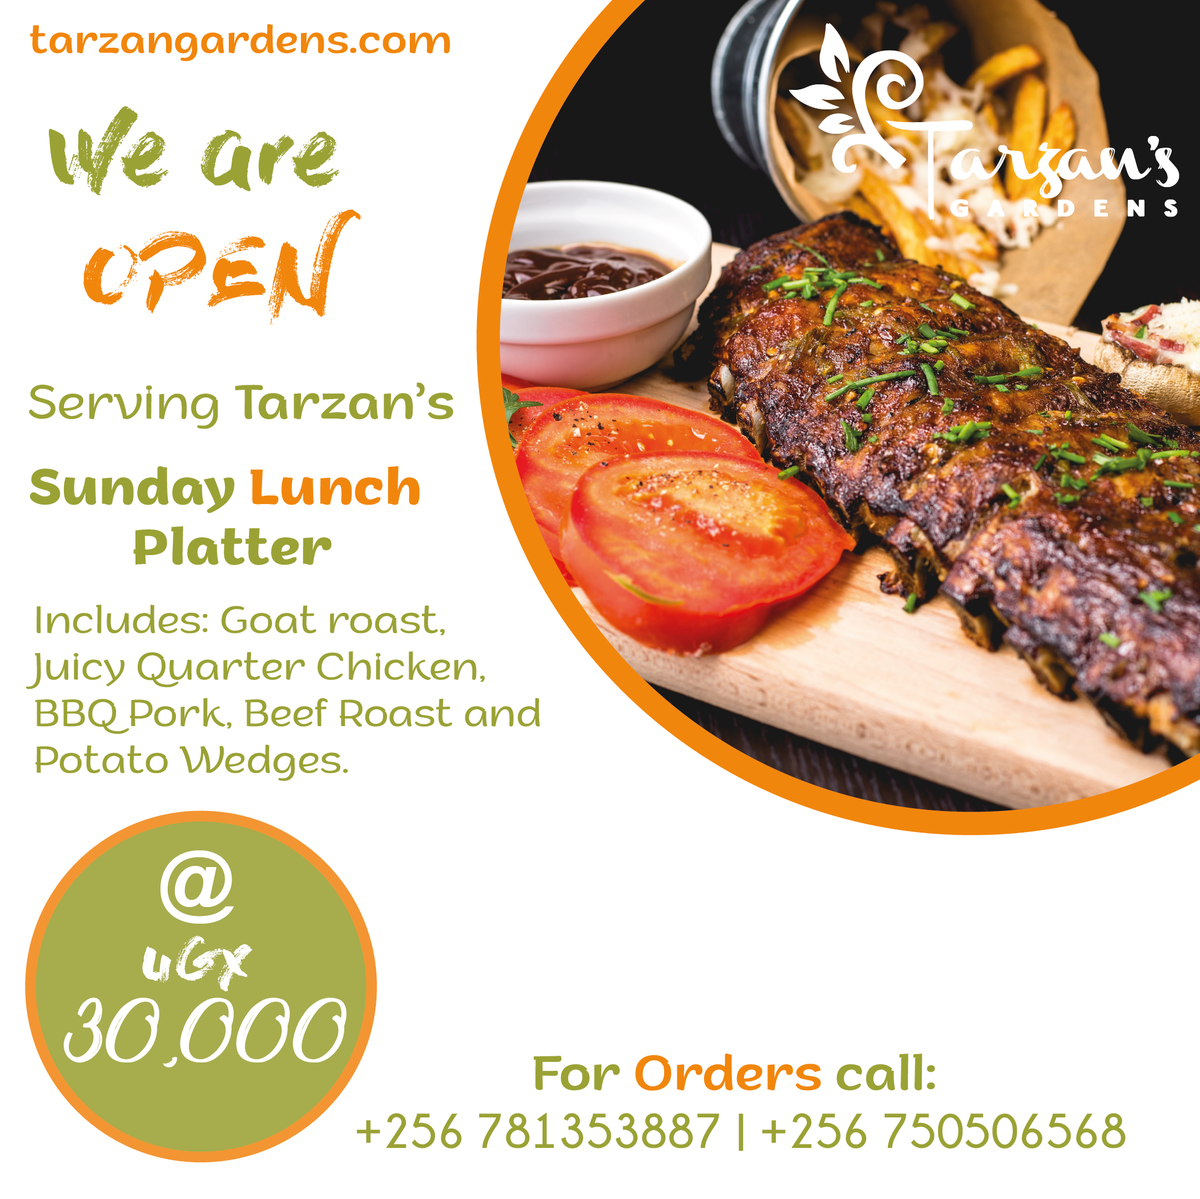 FOR THE LOVE  OF MEAT!   We present the Tarzan Sunday Lunch Platter. Comes with Goat Roast, Juicy Quarter Chicken, BBQ Pork, Beef Roast and Potato Wedges for only UGX. 30,000. Nothing can beat this !   Order now to get sorted +256 781353887, +256 750506568 . <br>http://pic.twitter.com/D0bxJNIIGu